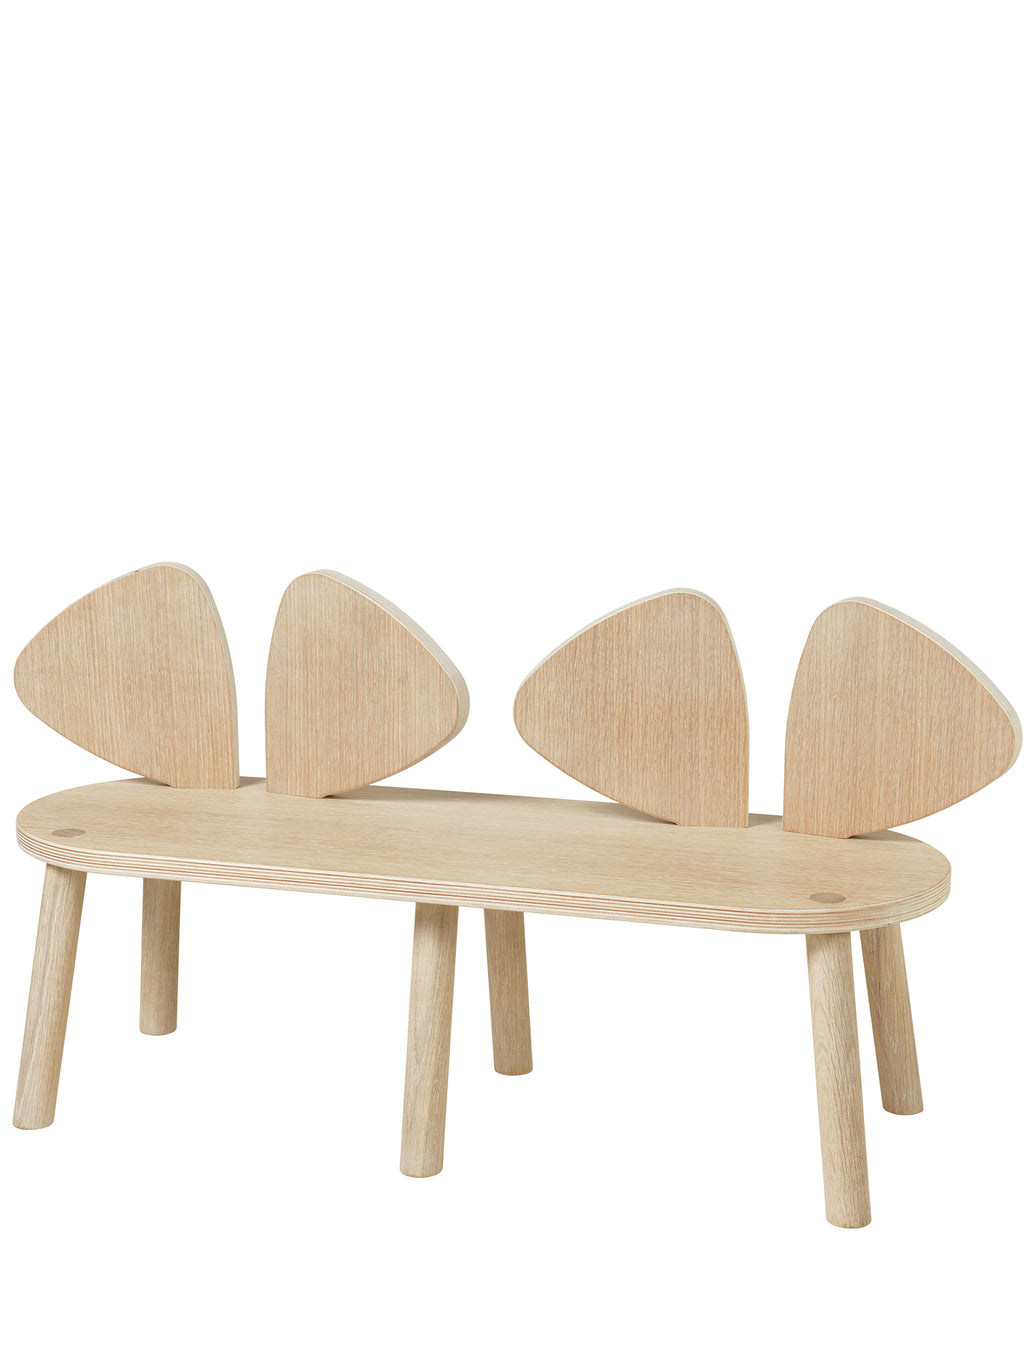 MOUSE BENCH (2-5 YEARS) // OAK